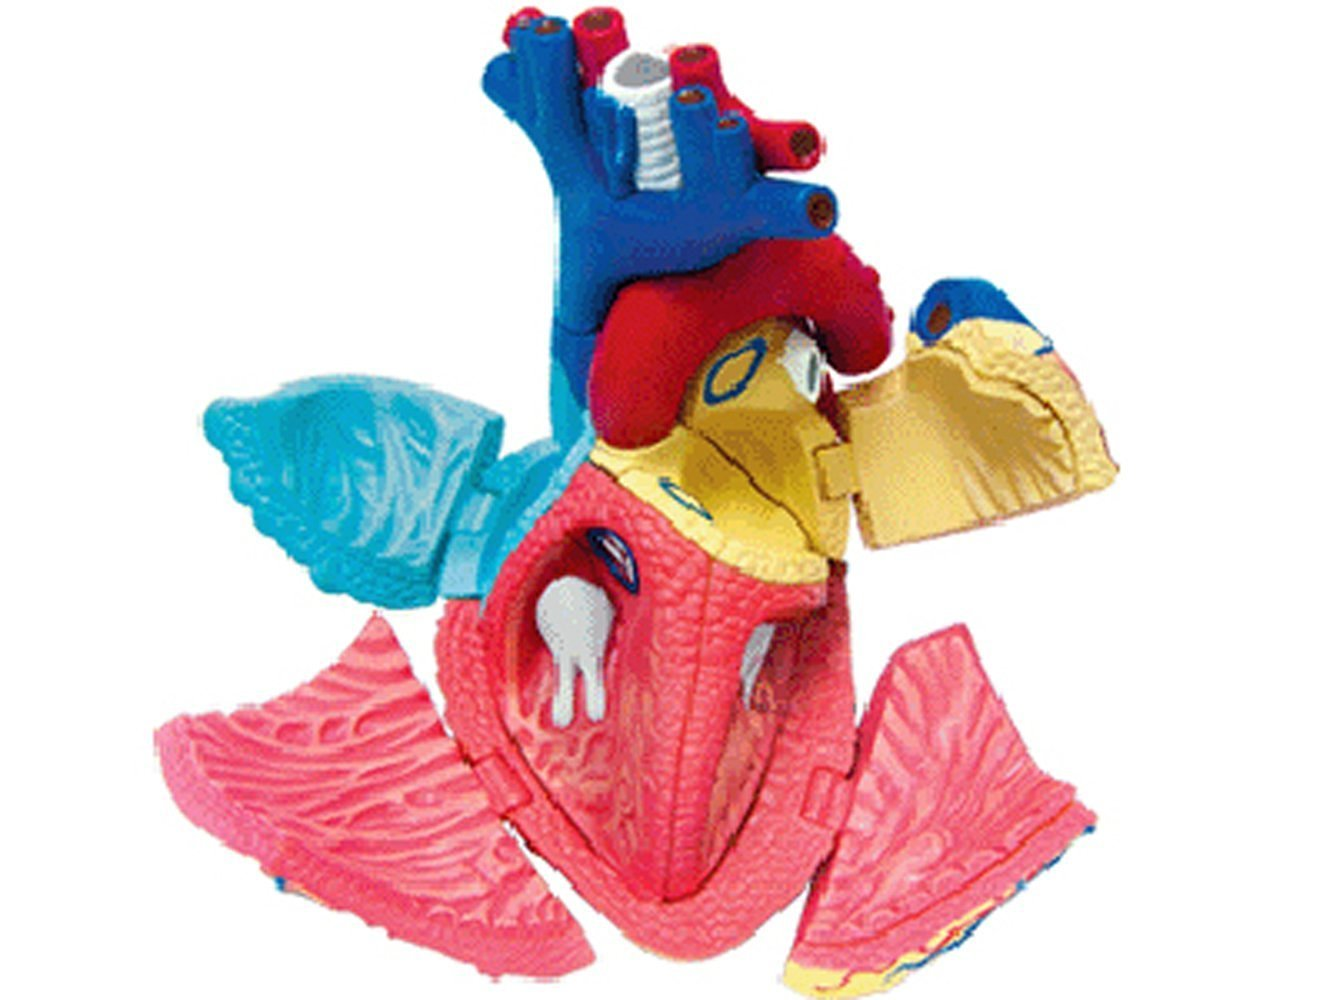 Buy 4D Vision Human Anatomy - Heart Anatomy Model by 4D Master in ...